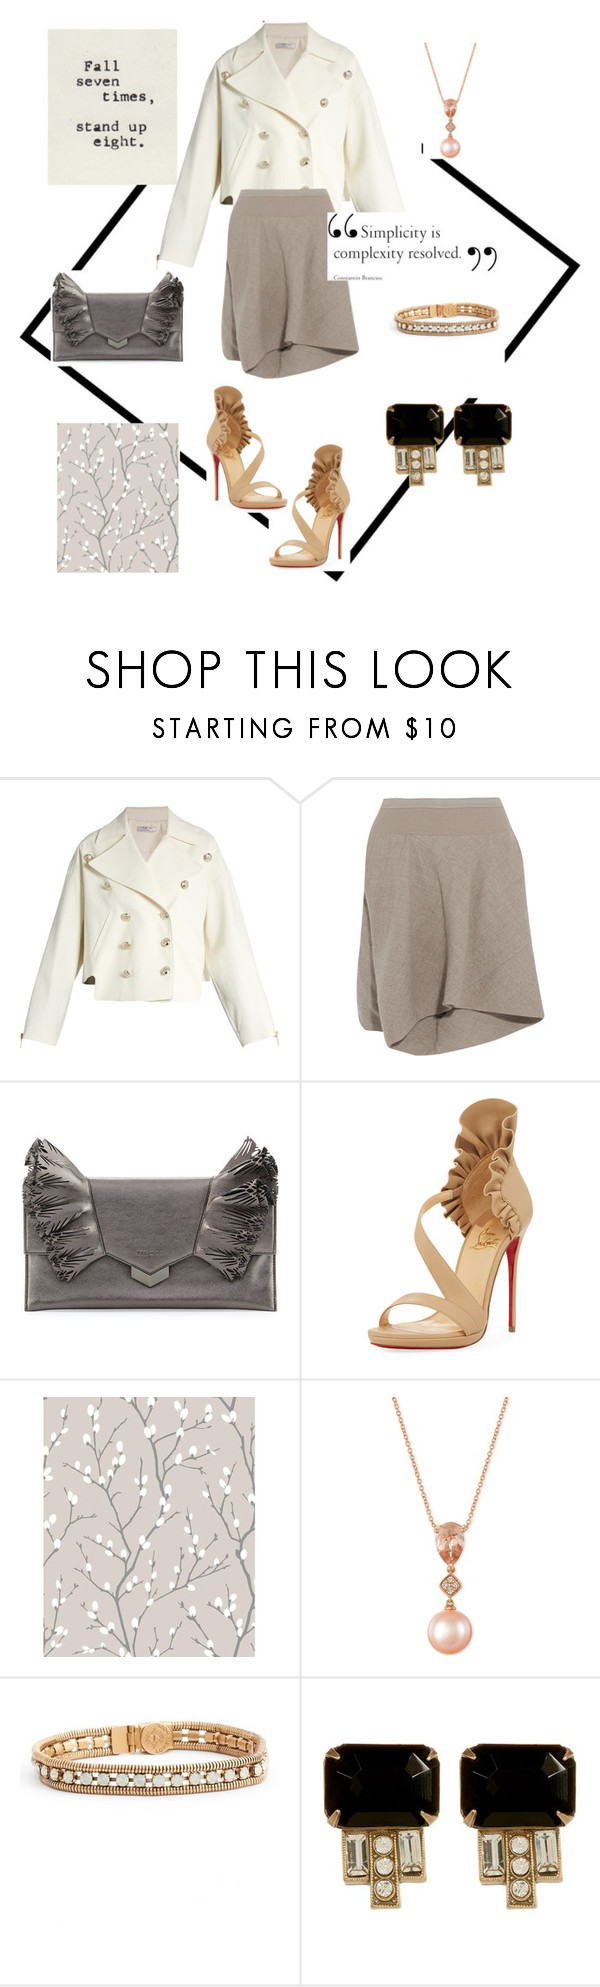 """Sin título #1181"" by na-ty-1 ❤ liked on Polyvore featuring Lanvin, Rick Owens, Jimmy Choo, Christian Louboutin, Roxy, LE VIAN and Loren Hope"